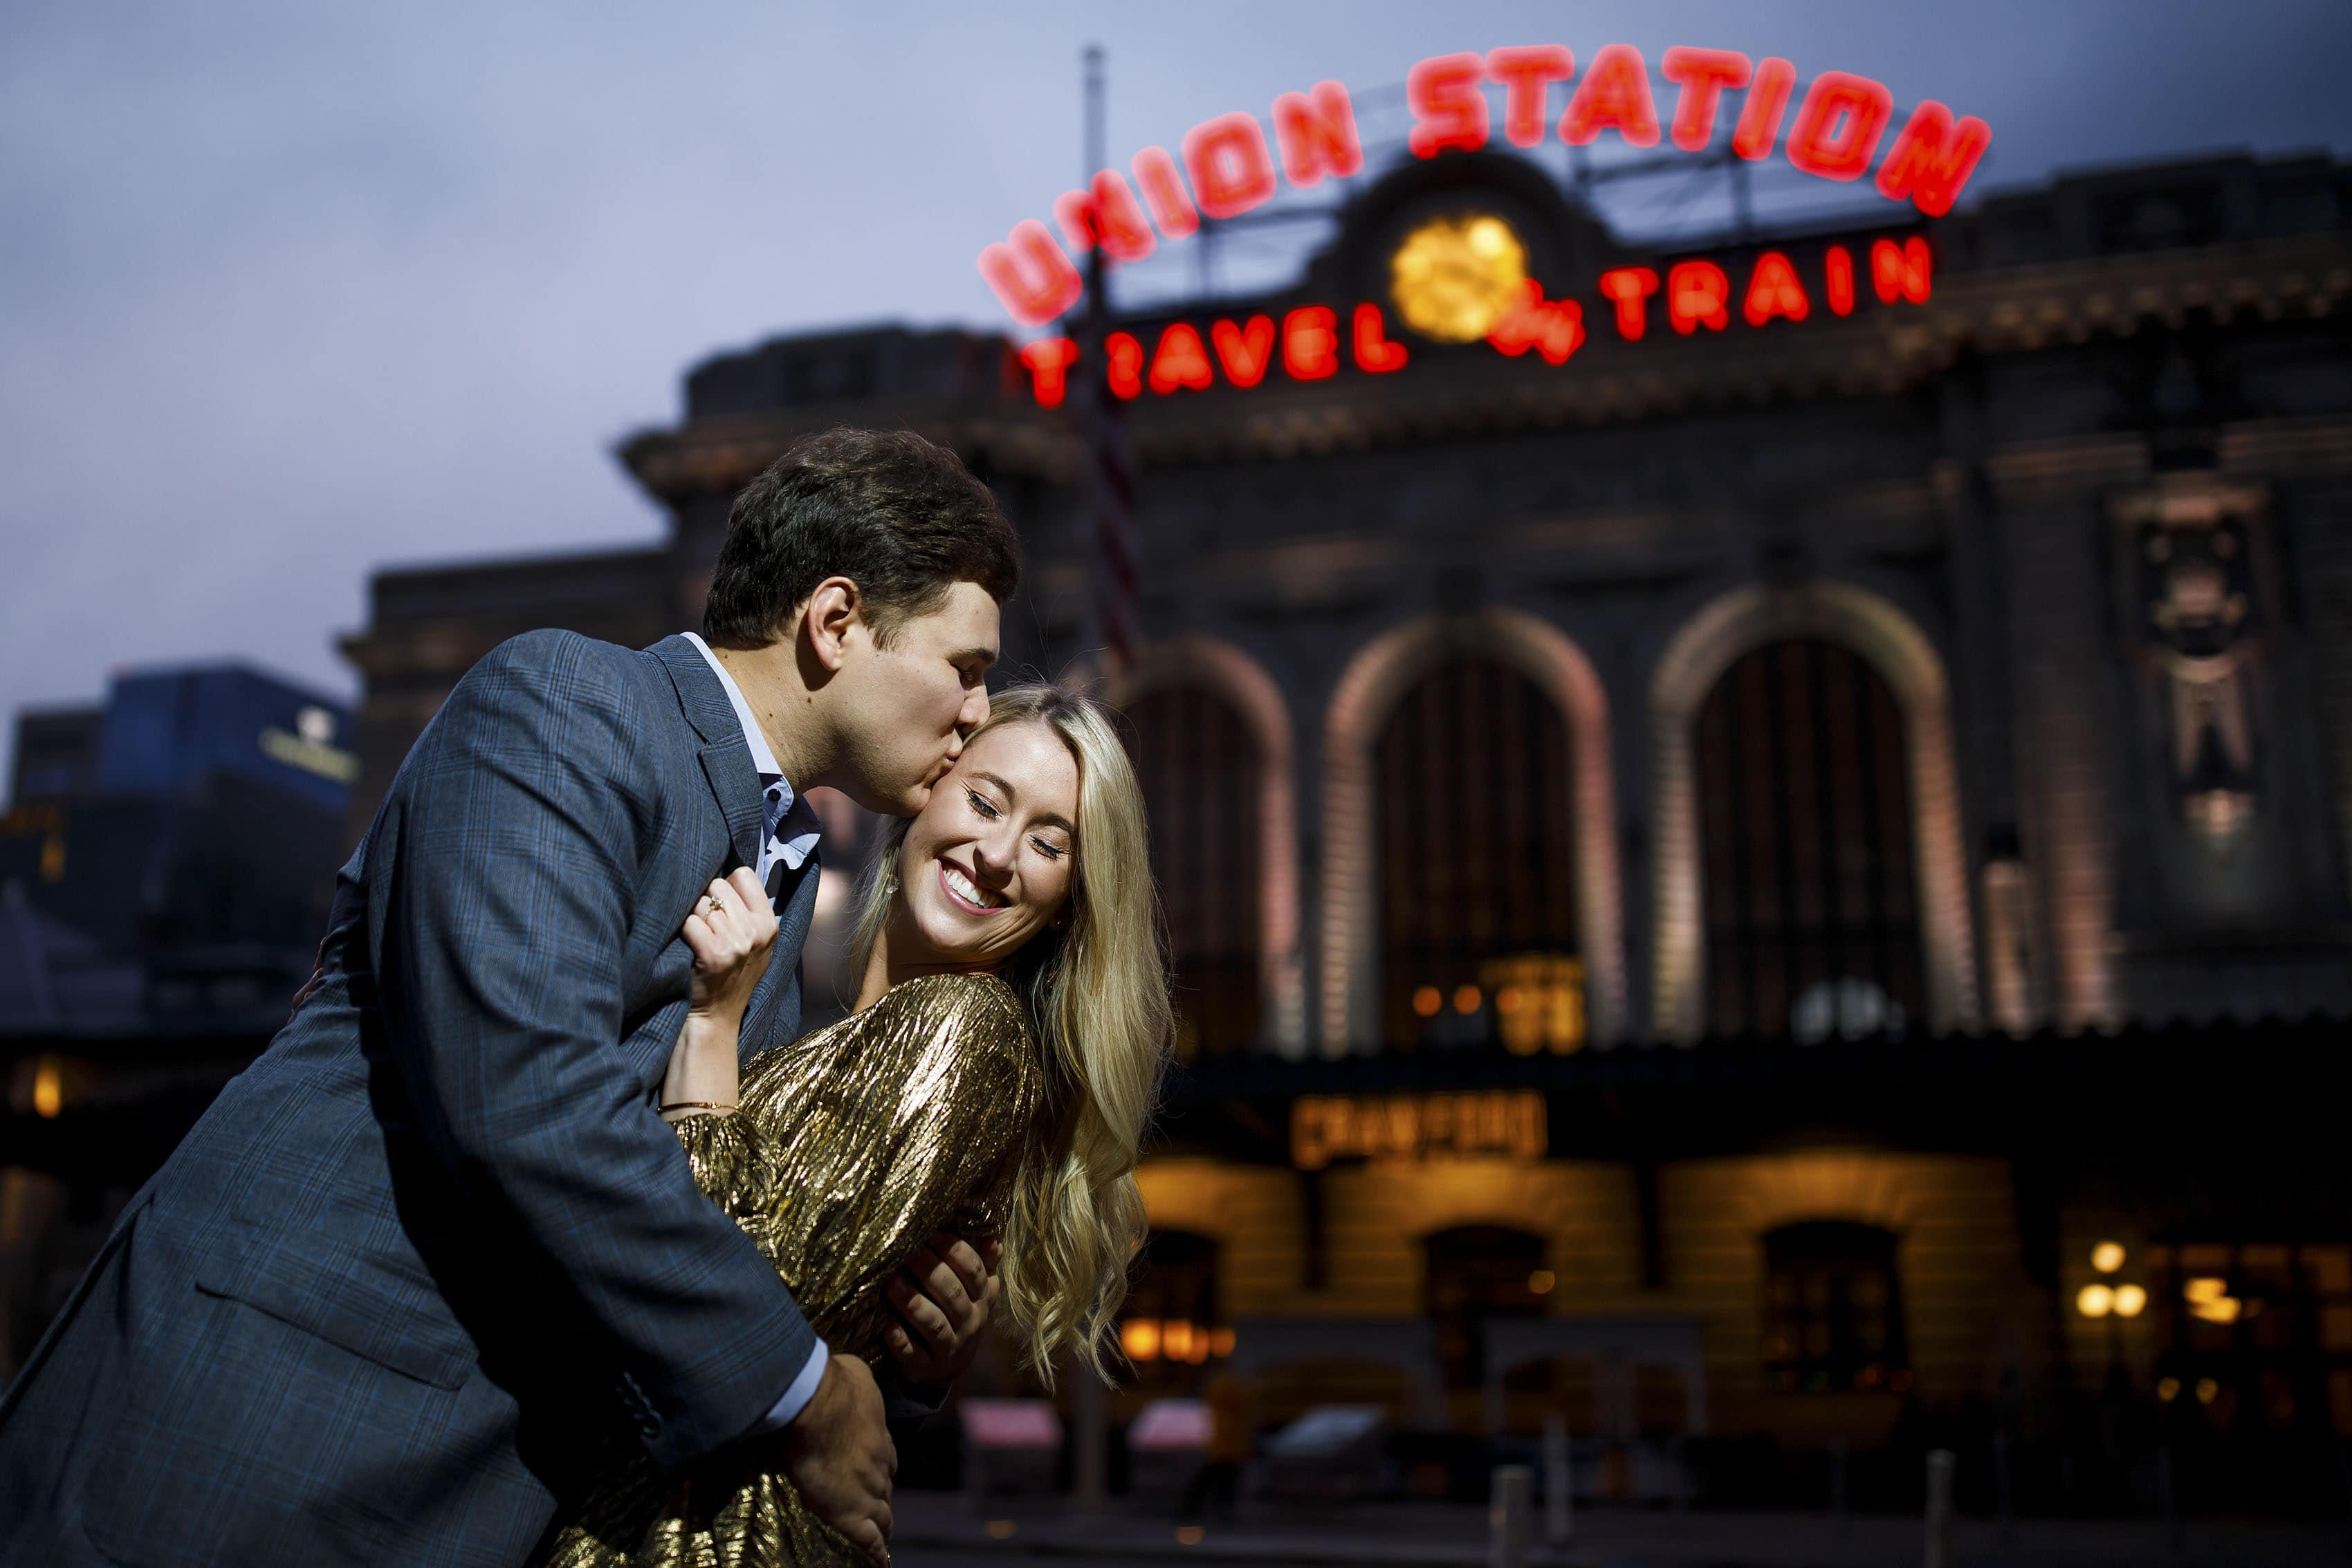 Alex kisses Sierra outside Denver's Union Station as they celebrate their recent engagement